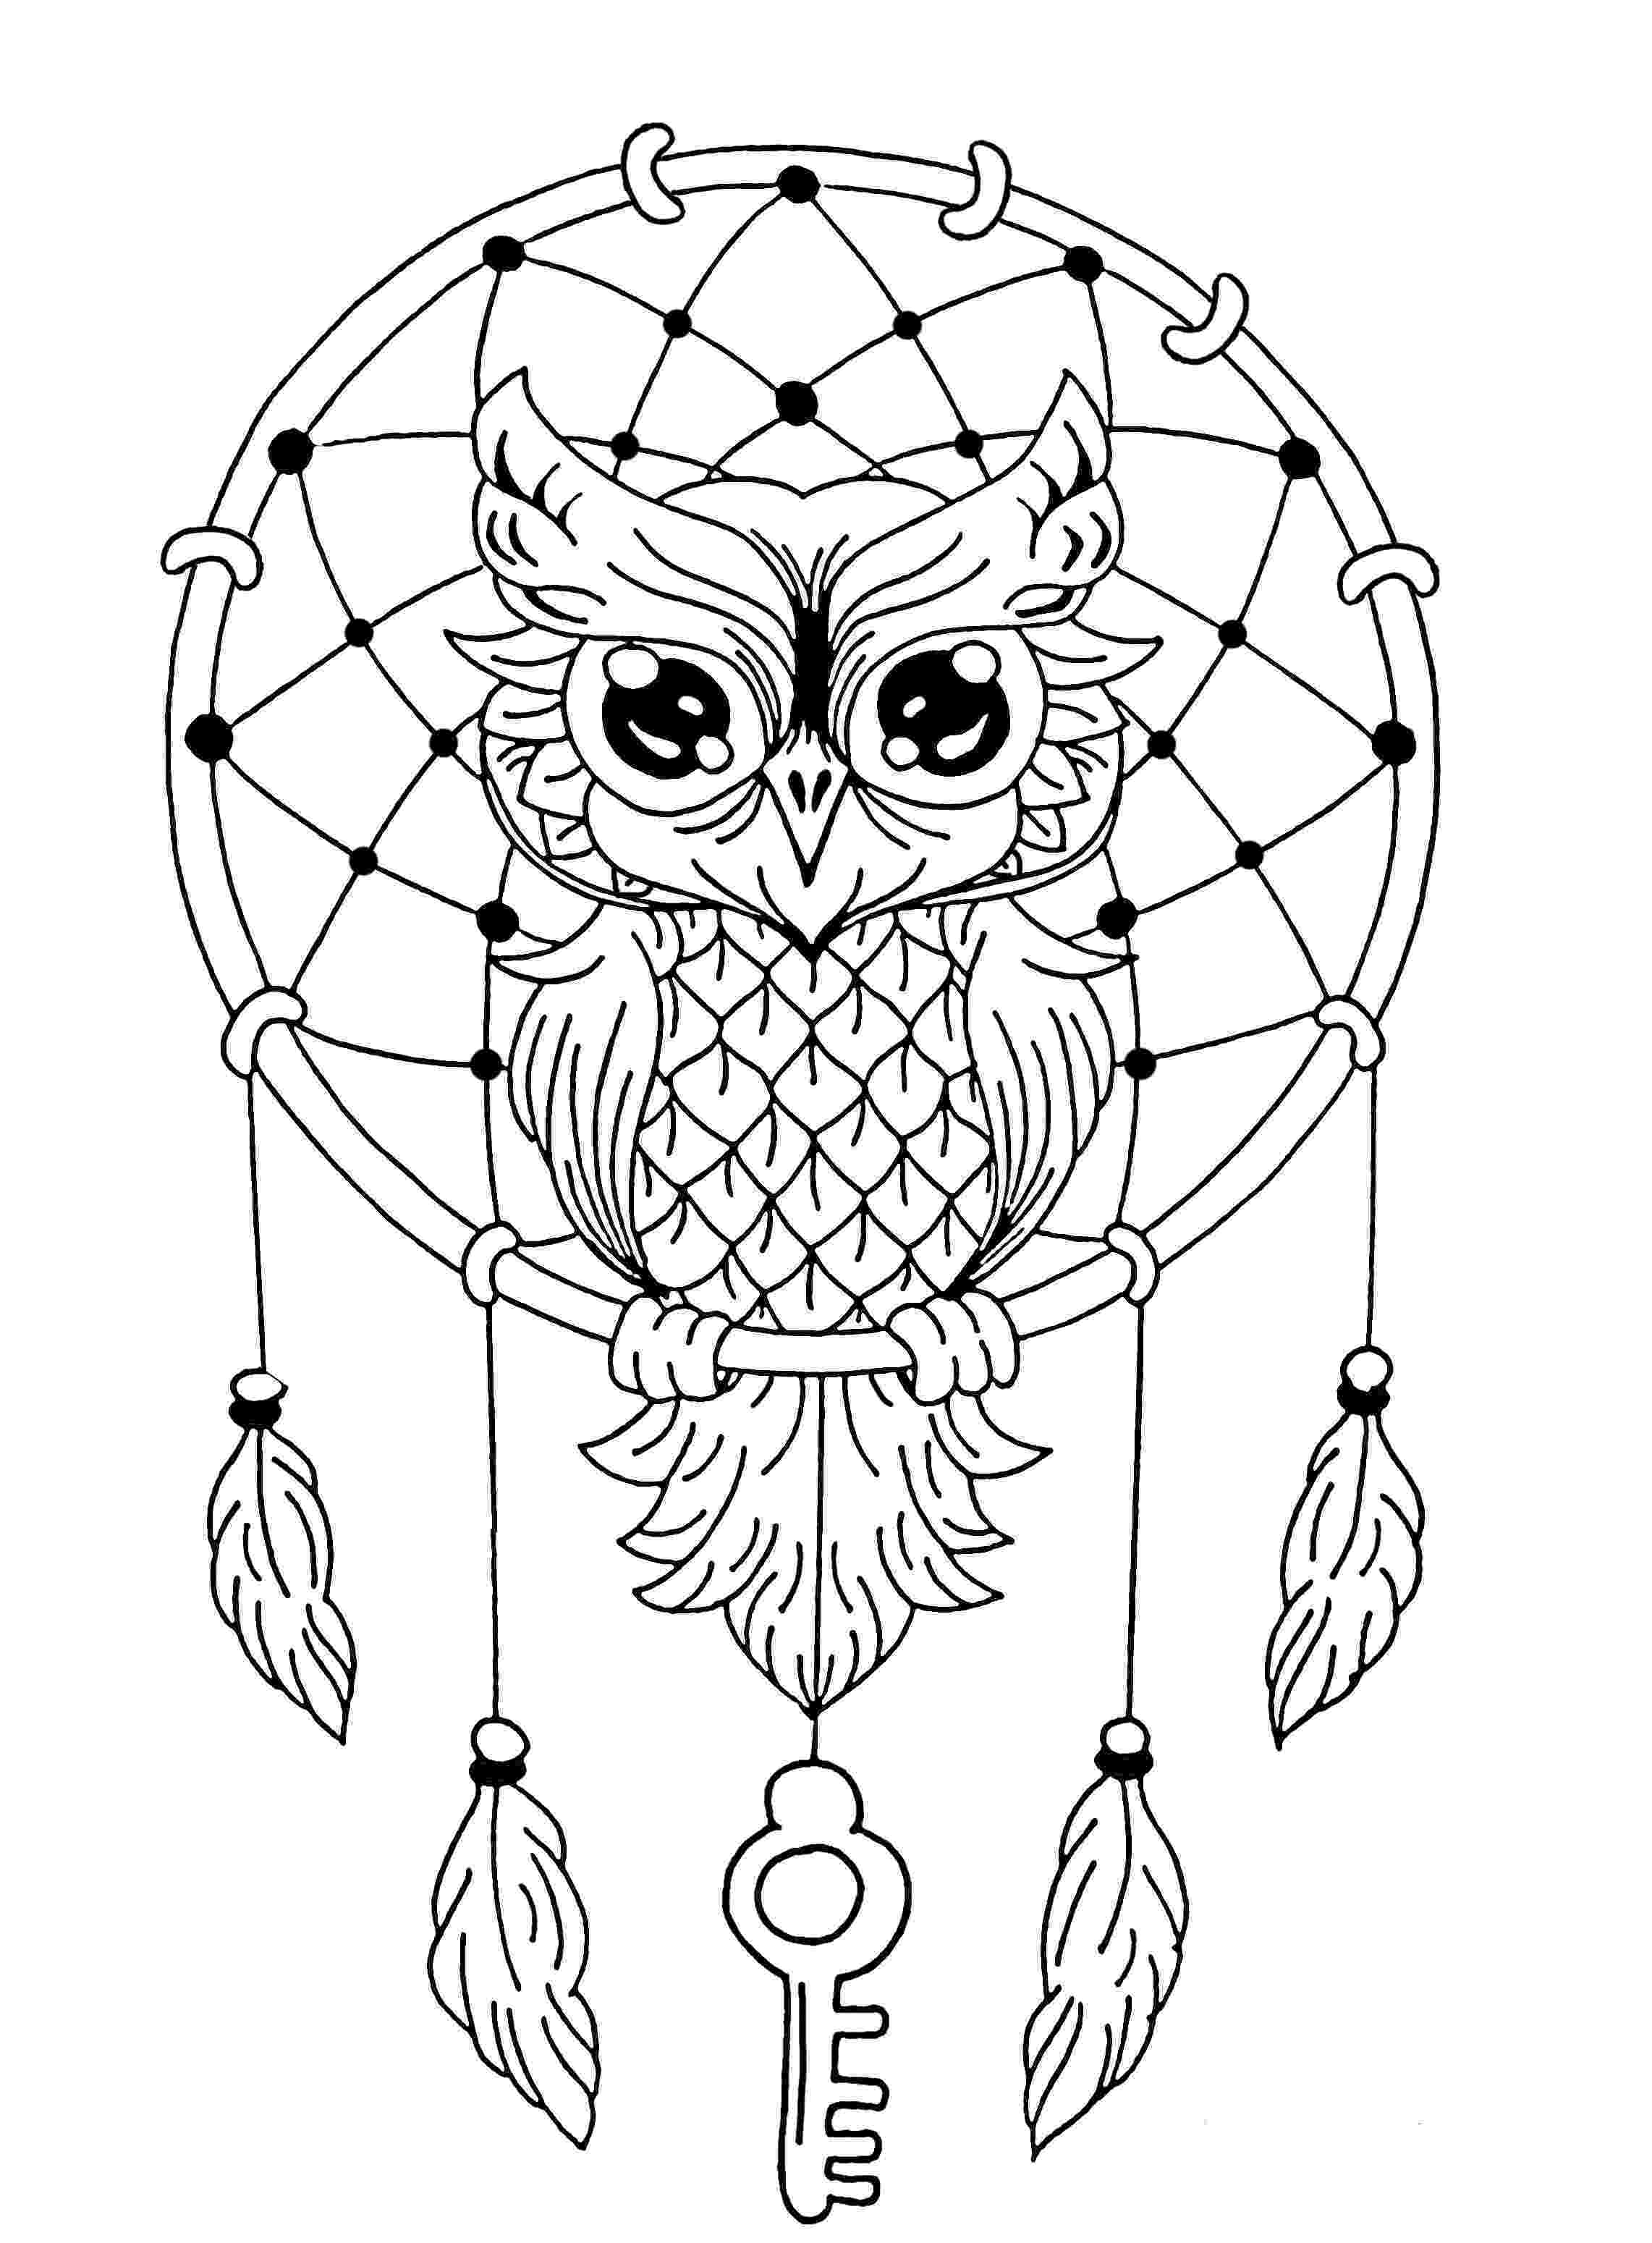 colouring pictures of owls free printable owl coloring pages for kids cool2bkids of owls pictures colouring